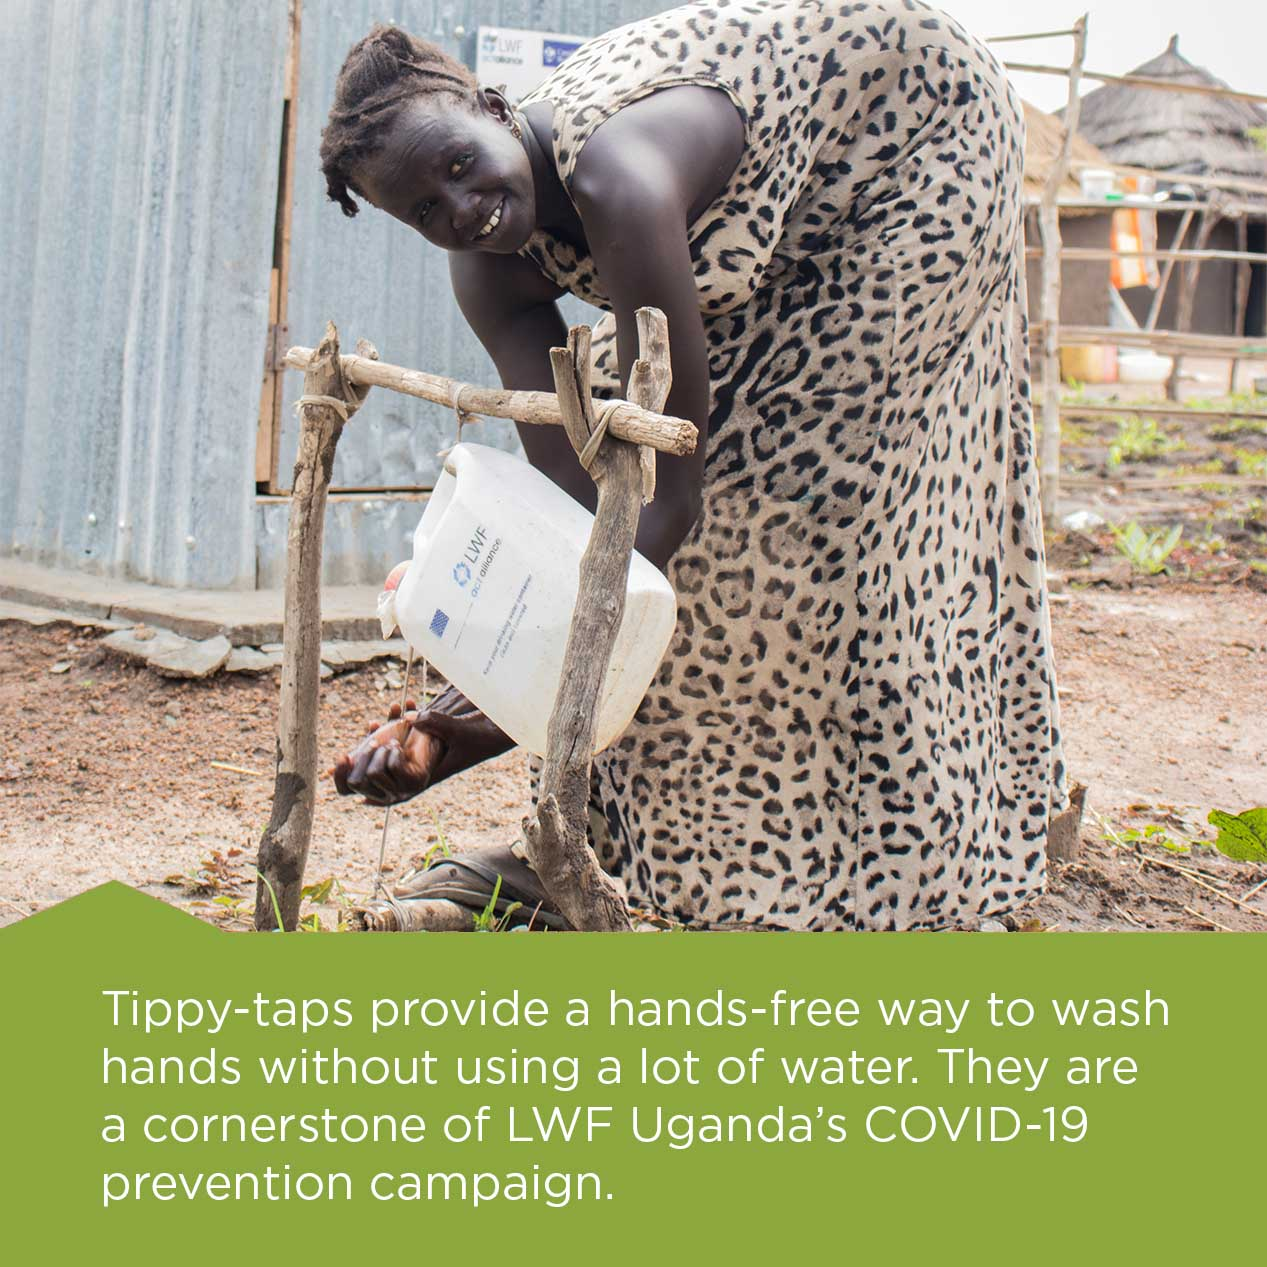 A woman washes her hands using a tippy-tap.